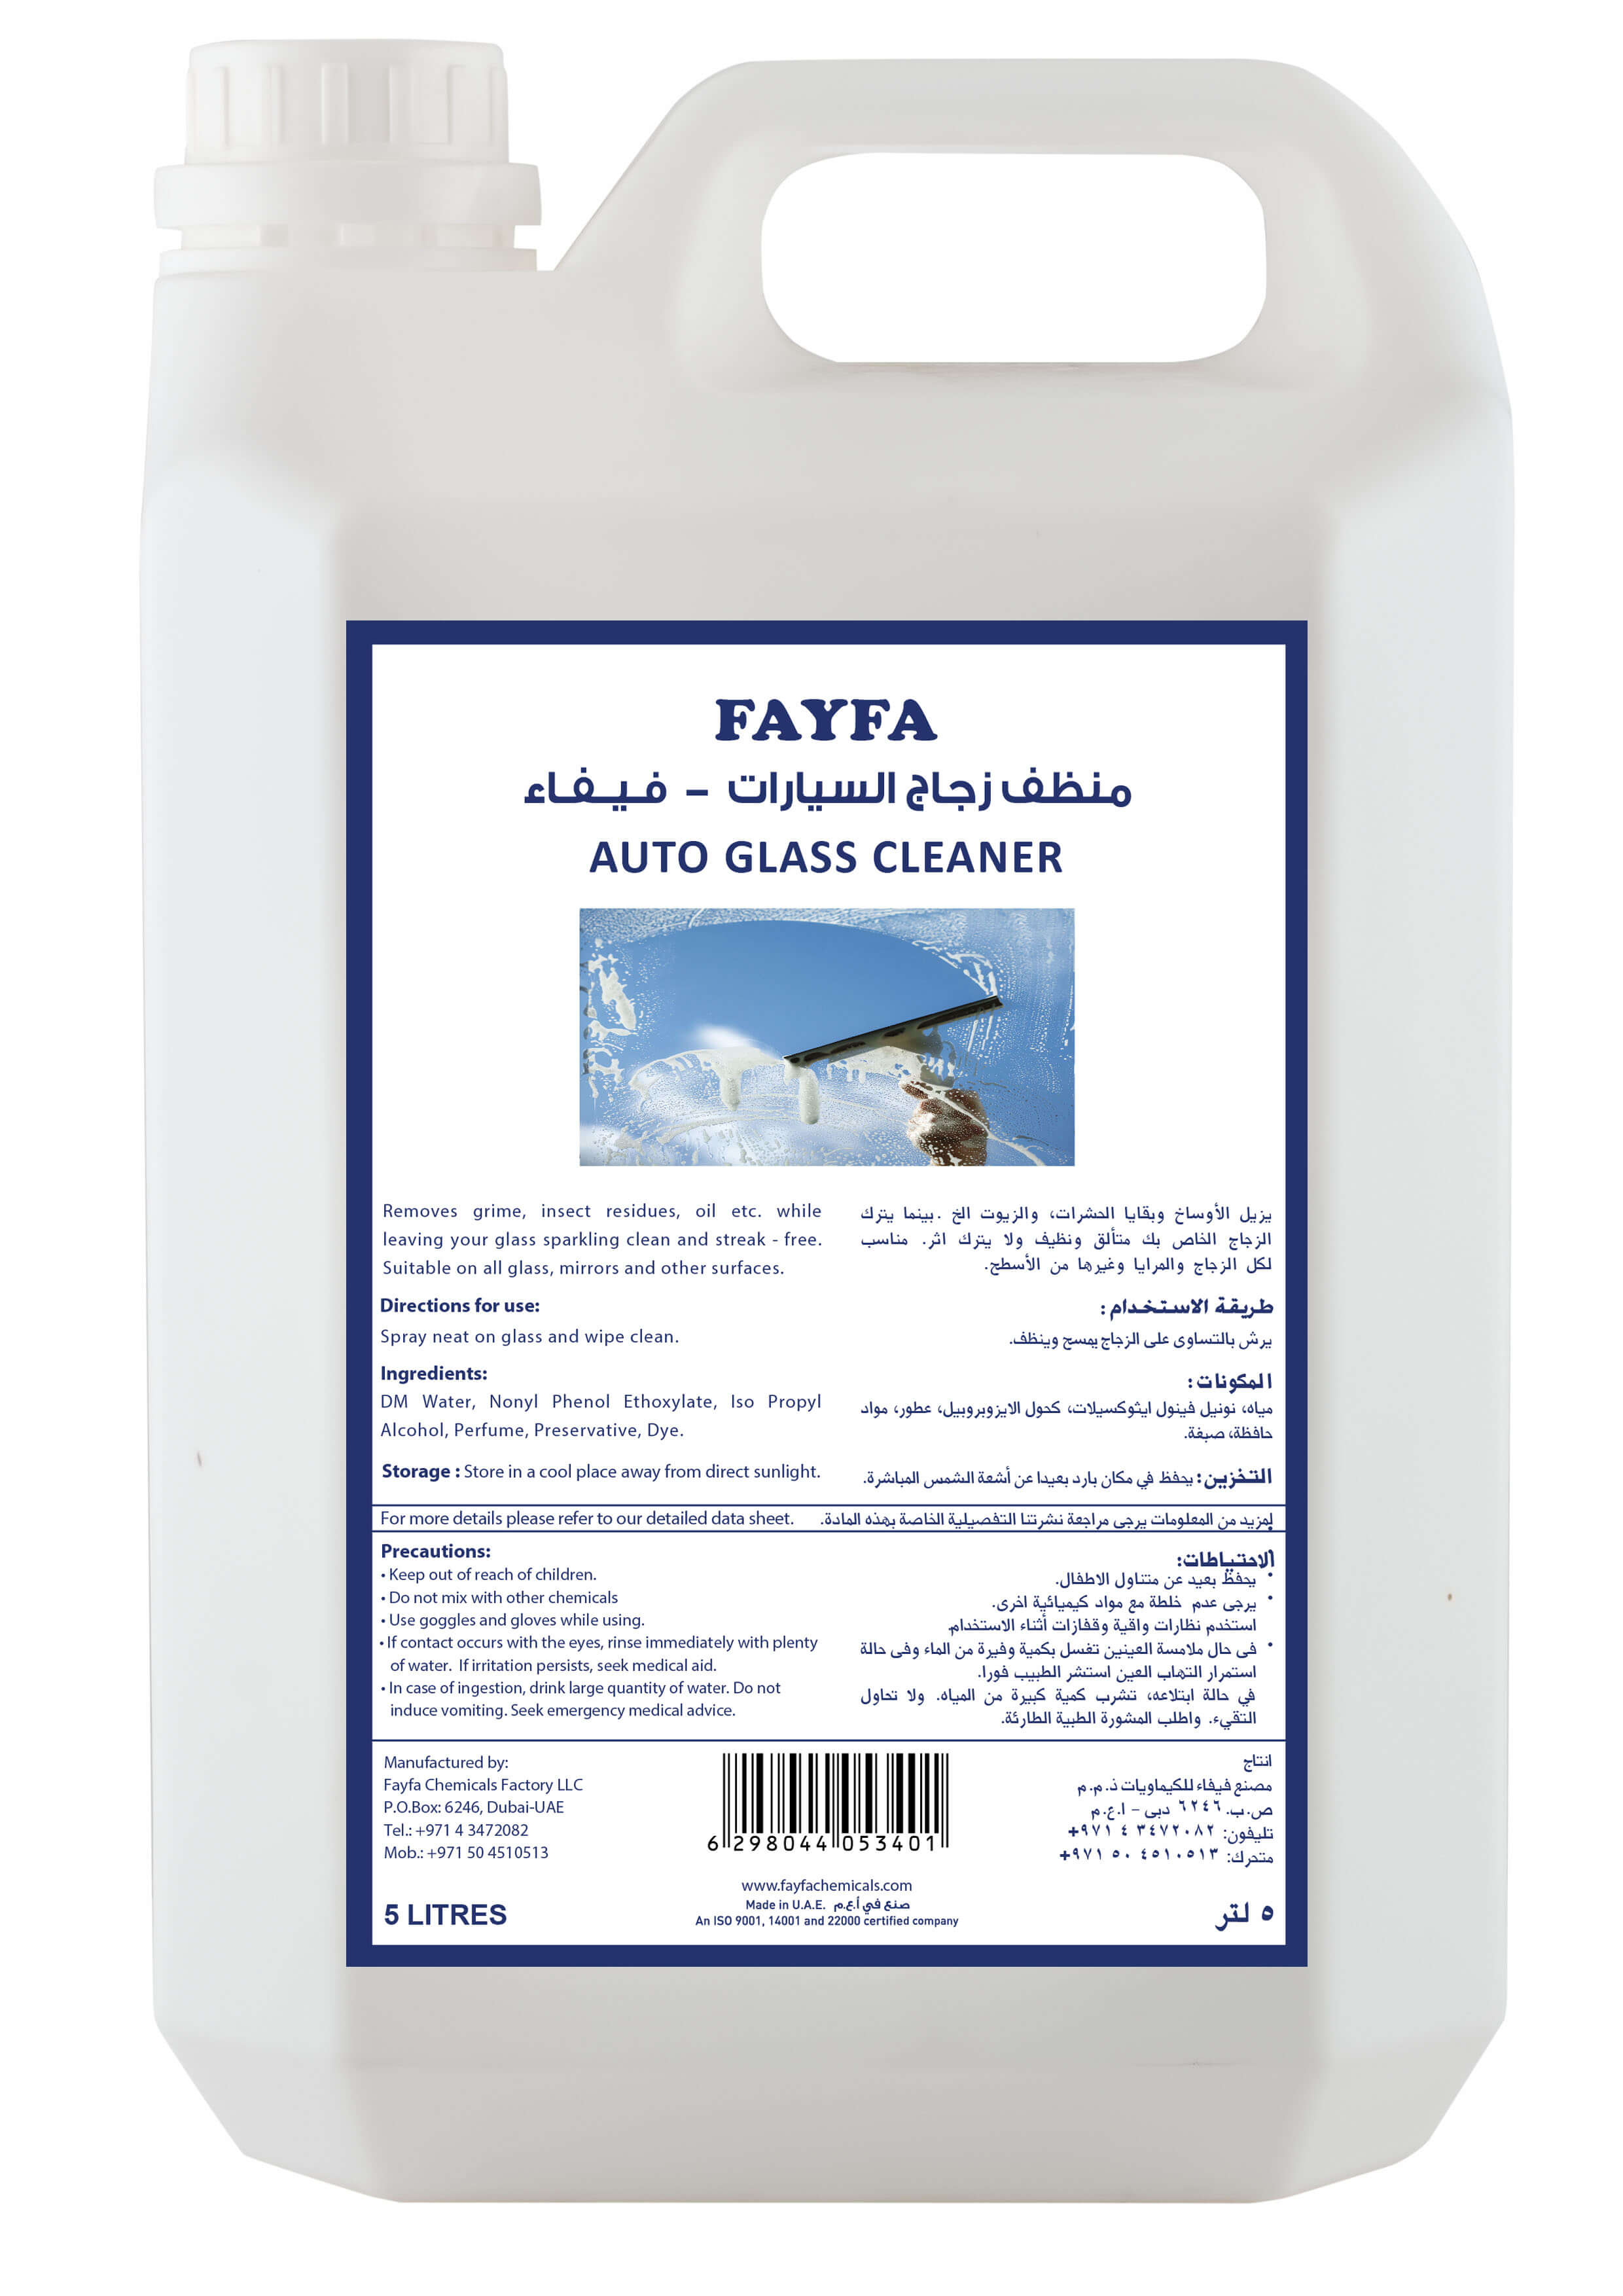 Auto Glass Cleaner Car Care Products Suppliers In Dubai